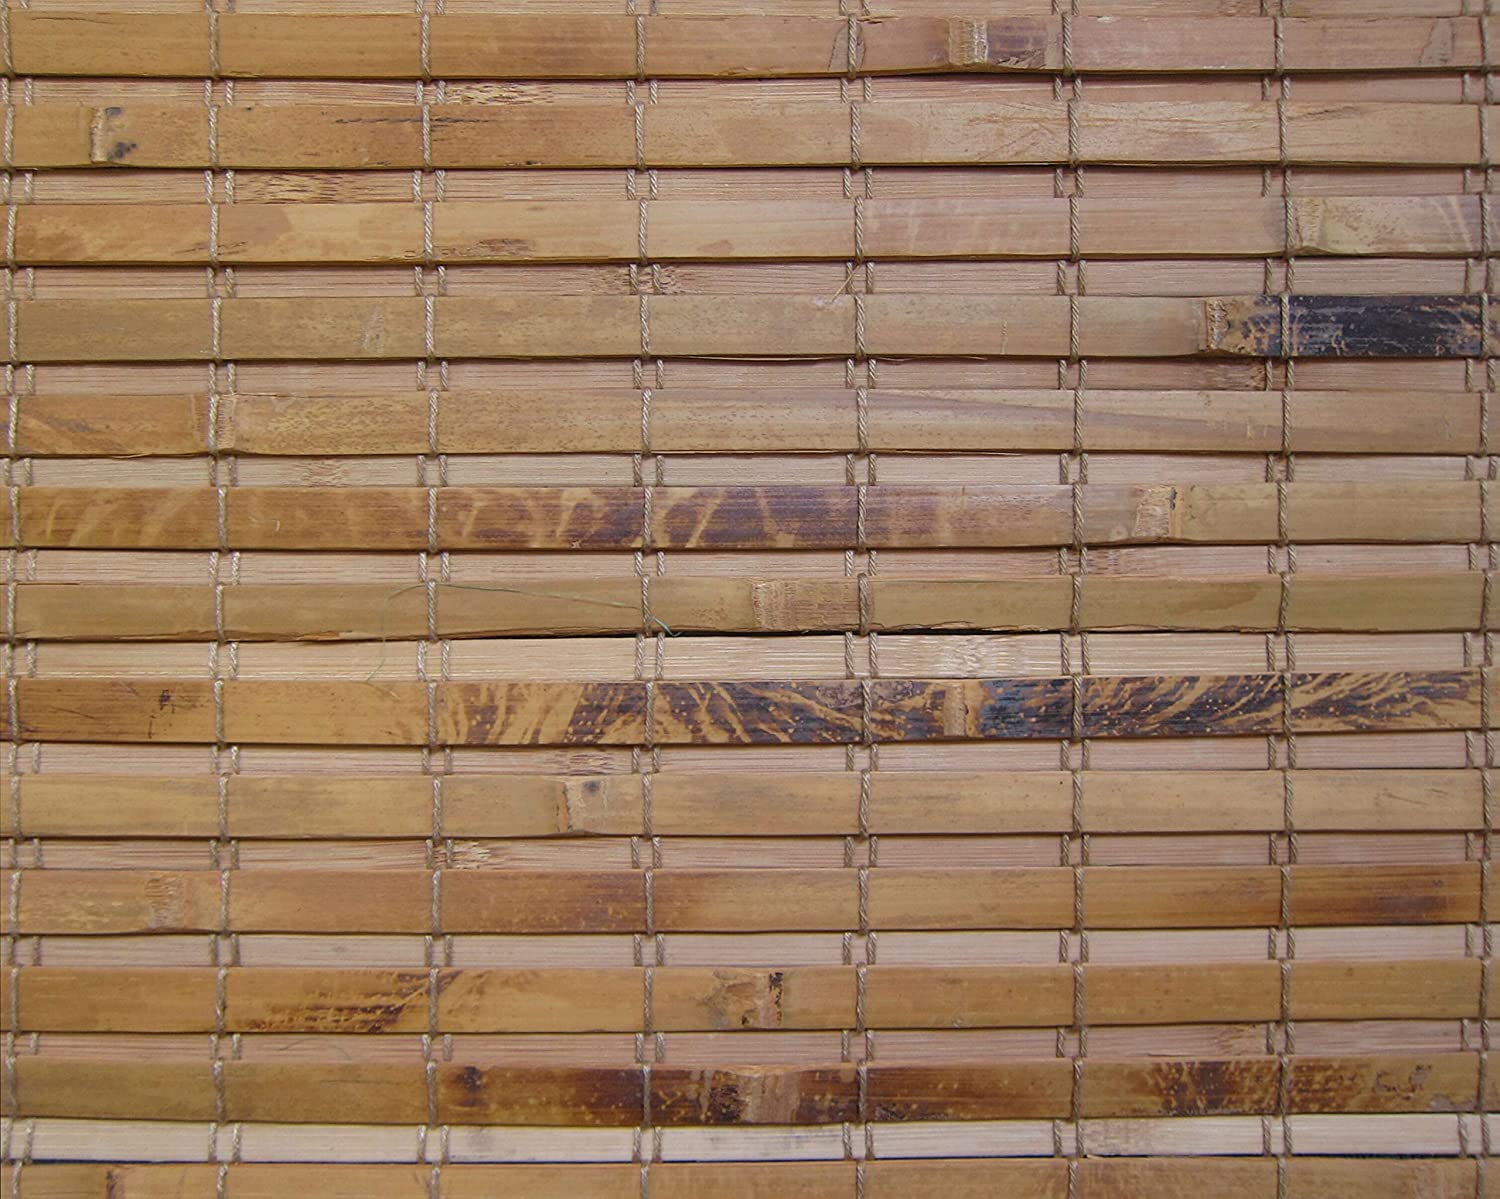 Cordless Woven Wood Roman Shades, 29W x 36H, Hatteras Camel, Sizes 20-72 Wide and 24-72 High